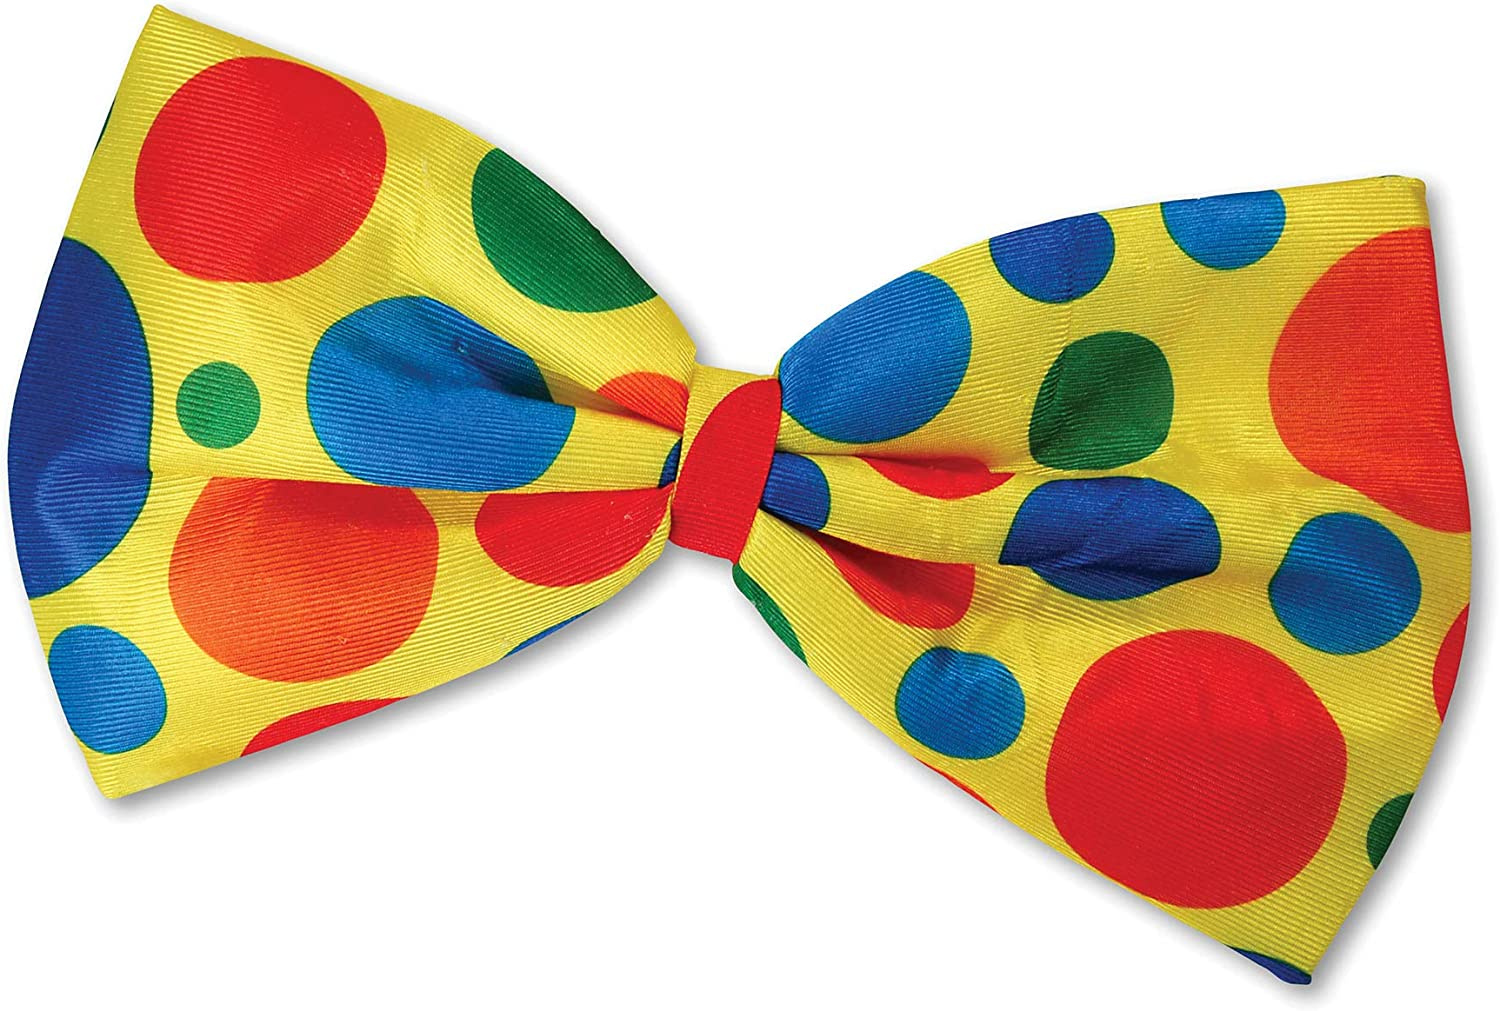 SHATCHI Bow Tie Clow Clown Jumbo pajarita unisex-adulto, talla única, accesorios para disfraces Circus World Book Day, color amarillo (Gifts 4 All Occasions Ltd 11667)